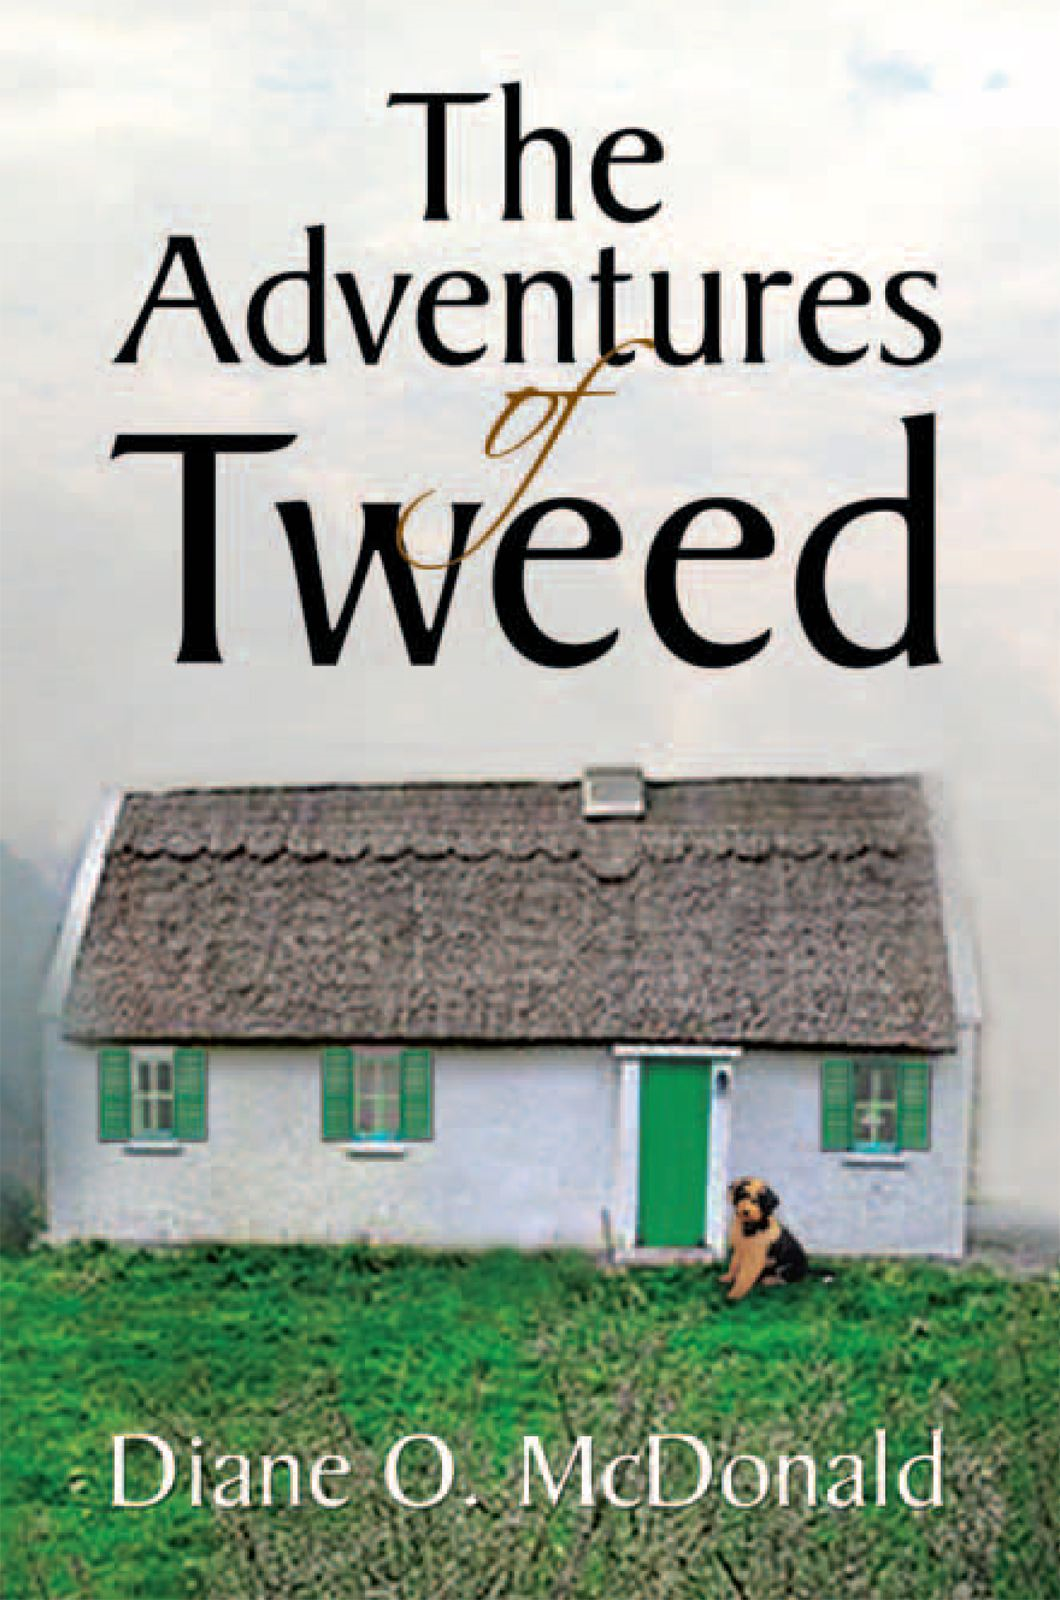 The Adventures of Tweed